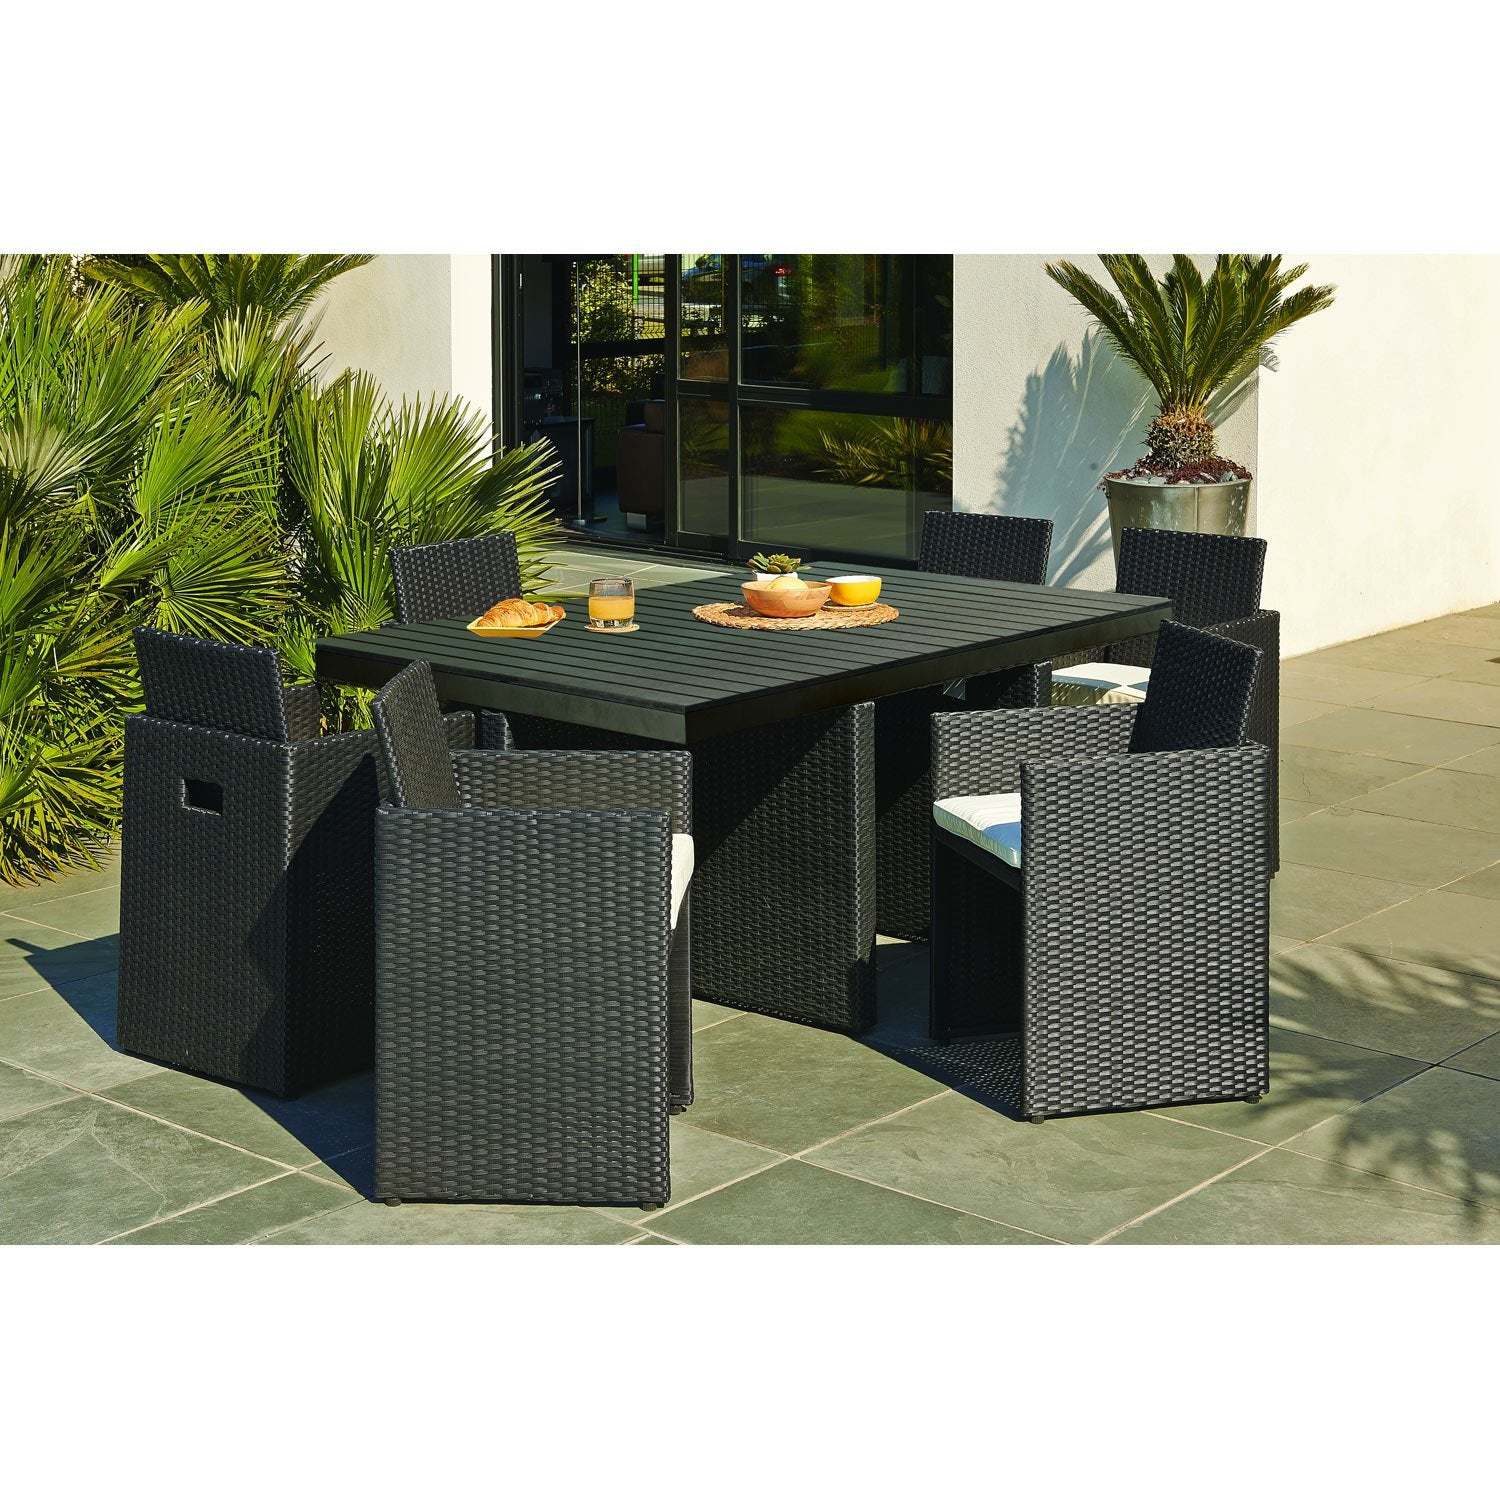 Salon de jardin encastrable r sine tress e noir 1 table 6 fauteuils leroy merlin Salon de jardin vasto